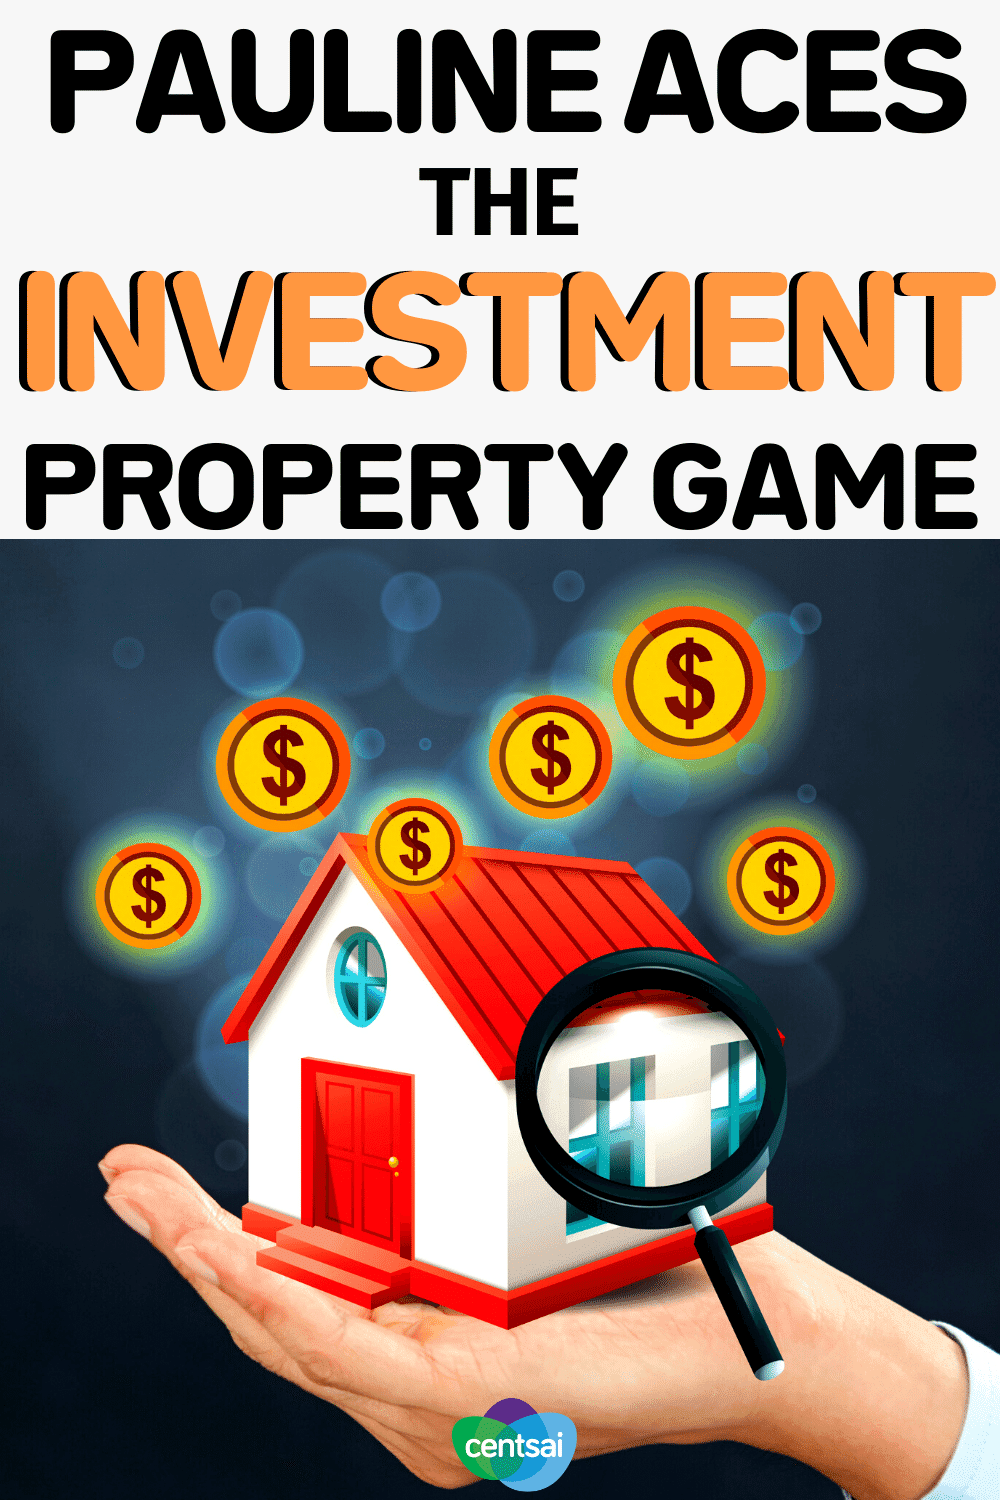 Pauline Aces the Investment Property Game